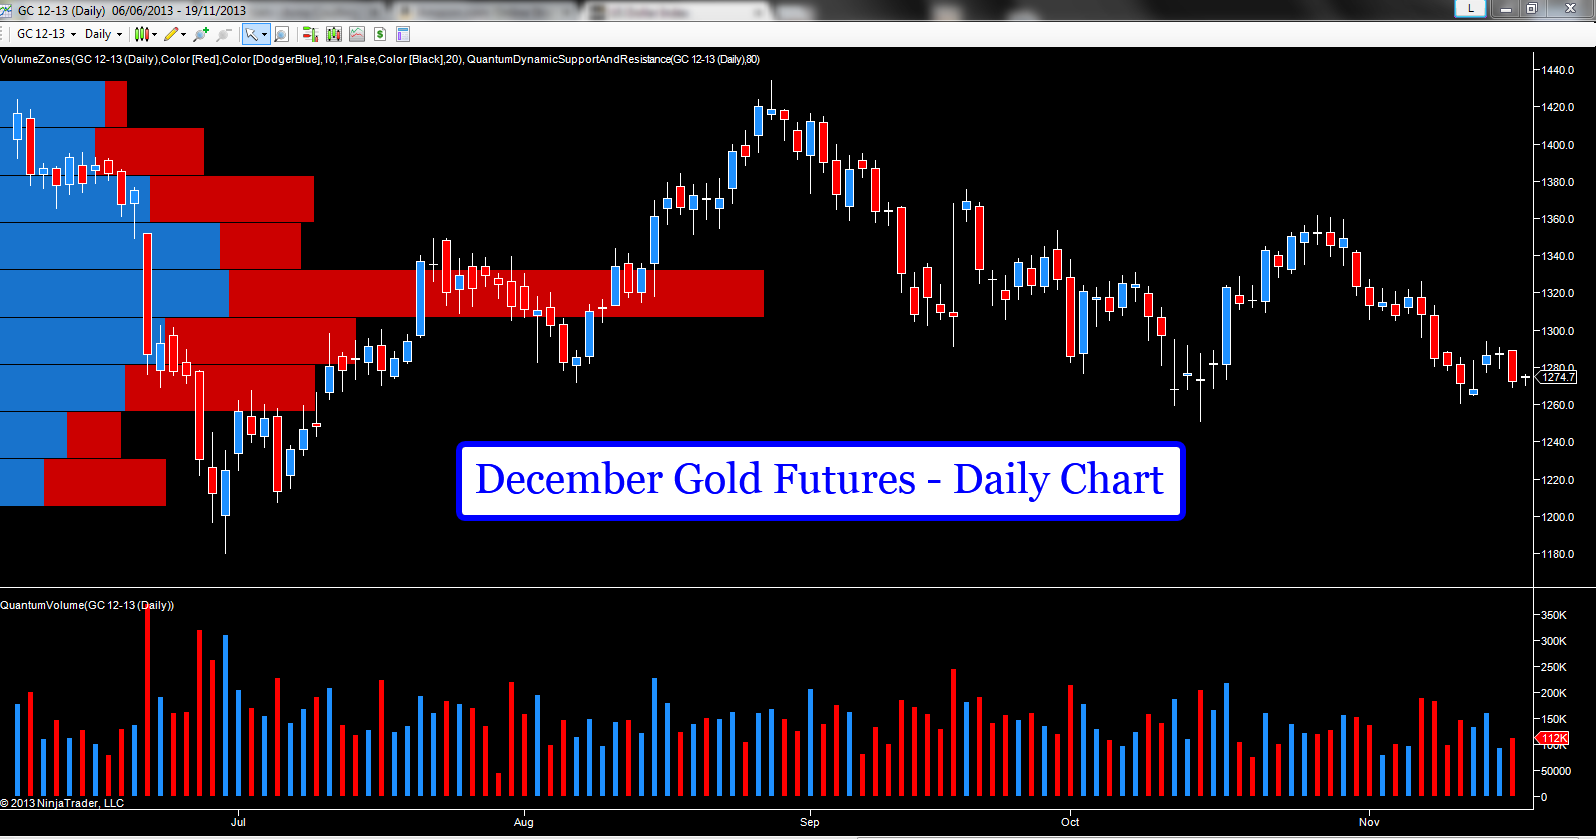 December Gold Futures Daily